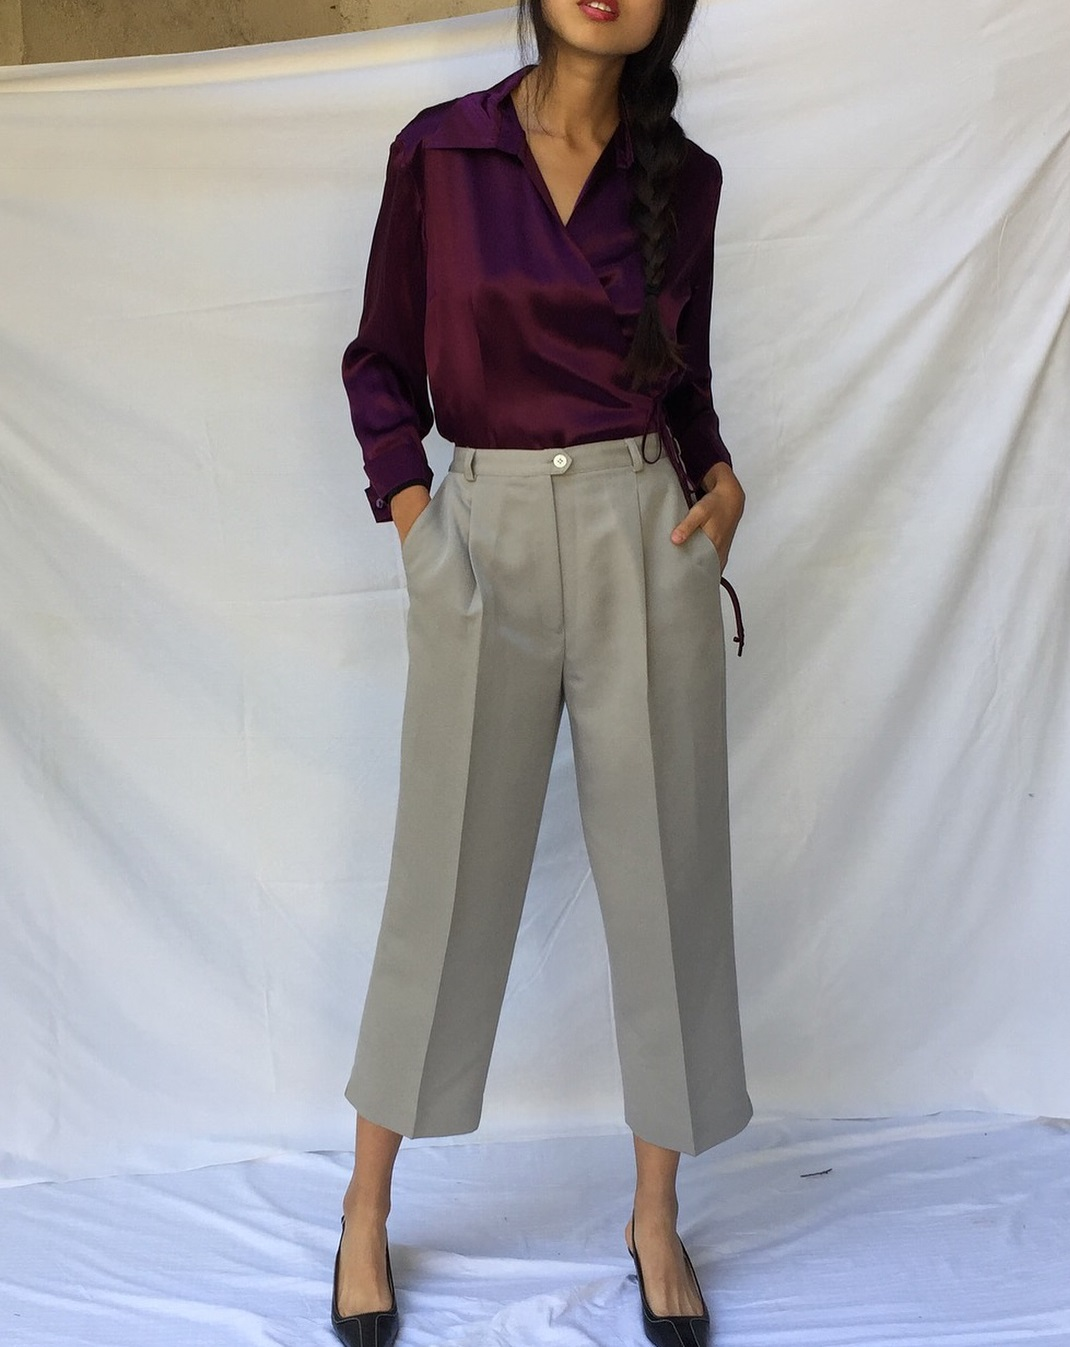 Vintage Taupe Cropped High Waist Pleated Rayon Blend Trousers with Maroon Satin Full Sleeves Wrap Top